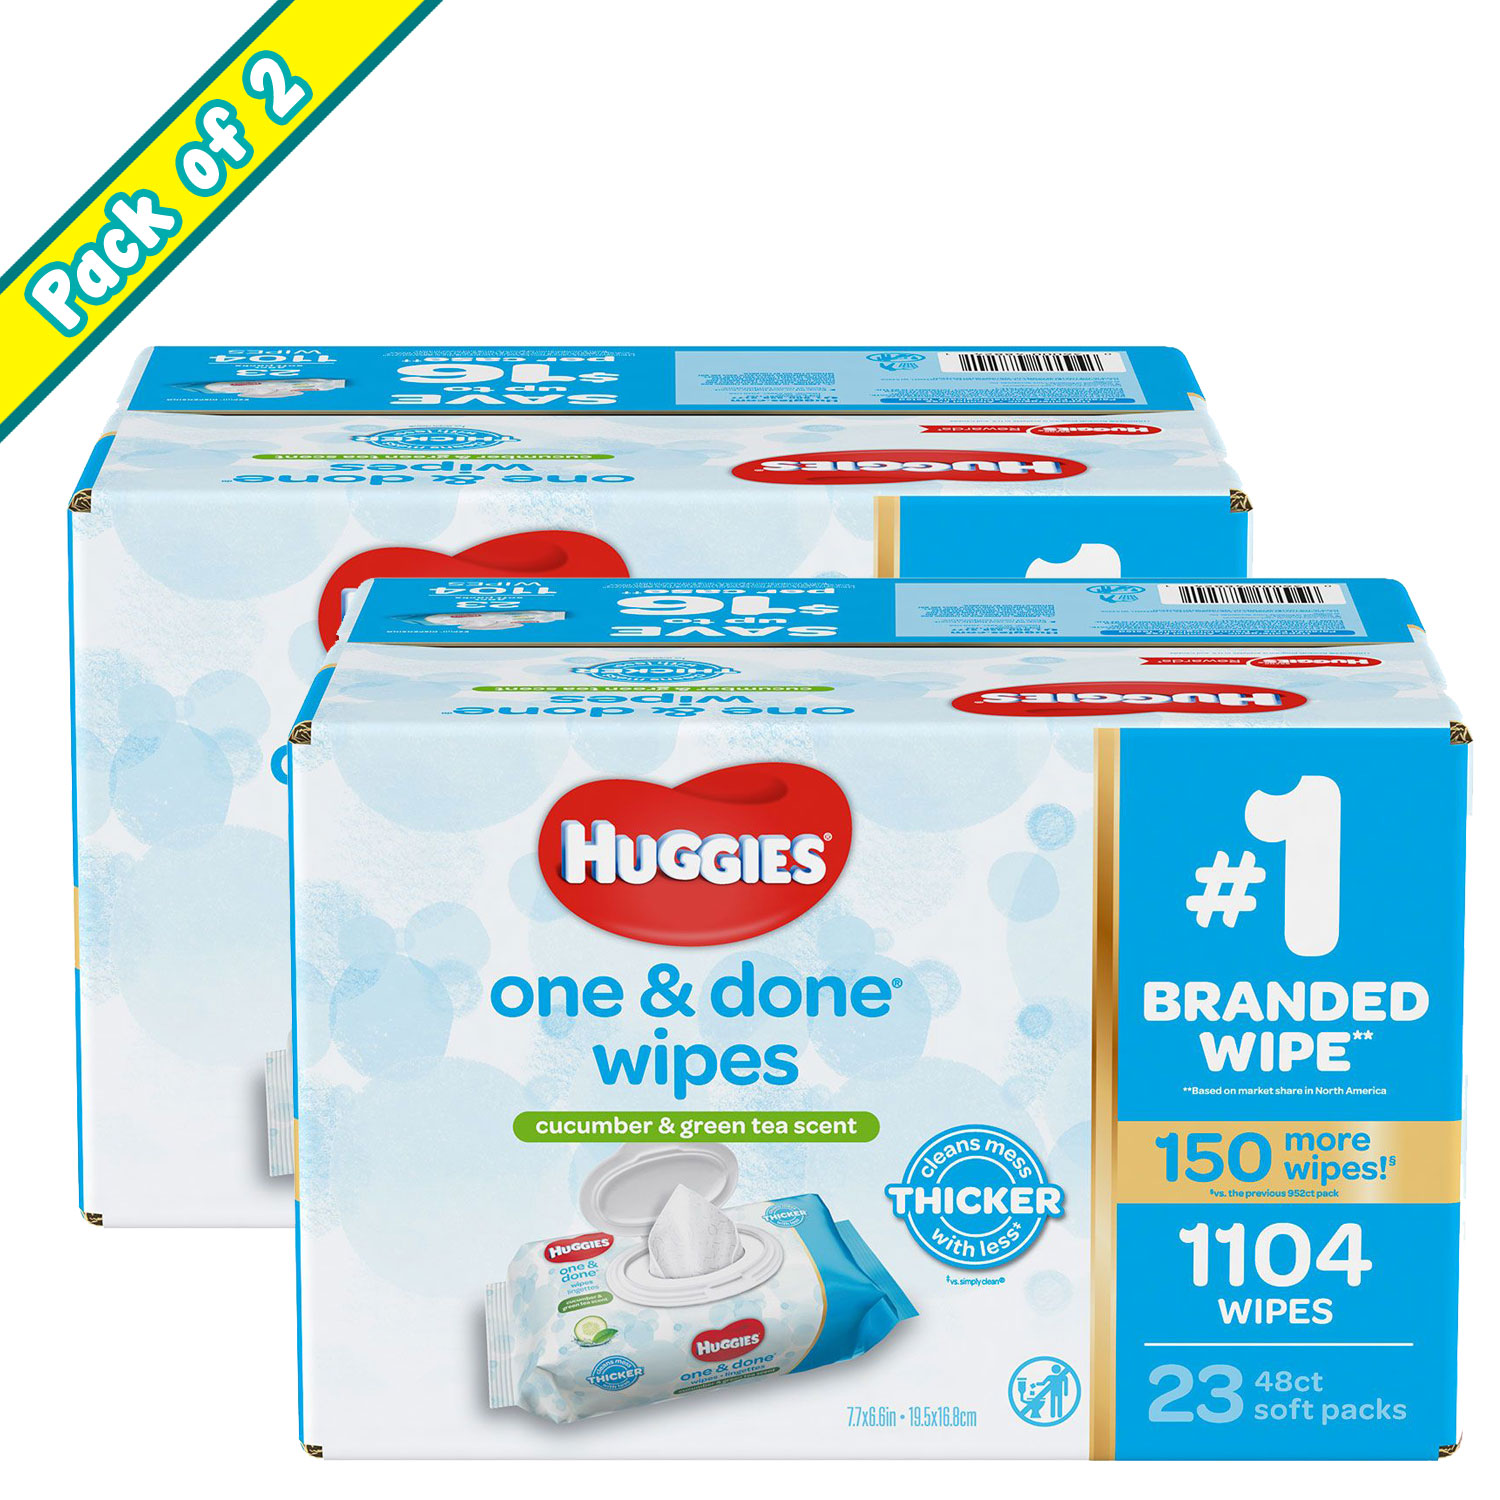 Pack of 2 Huggies One & Done Alcohol-Free, Paraben-Free, Phenoxyethanol-Free & MIT-Free Baby Wipes, Scented - 1,104 ct.